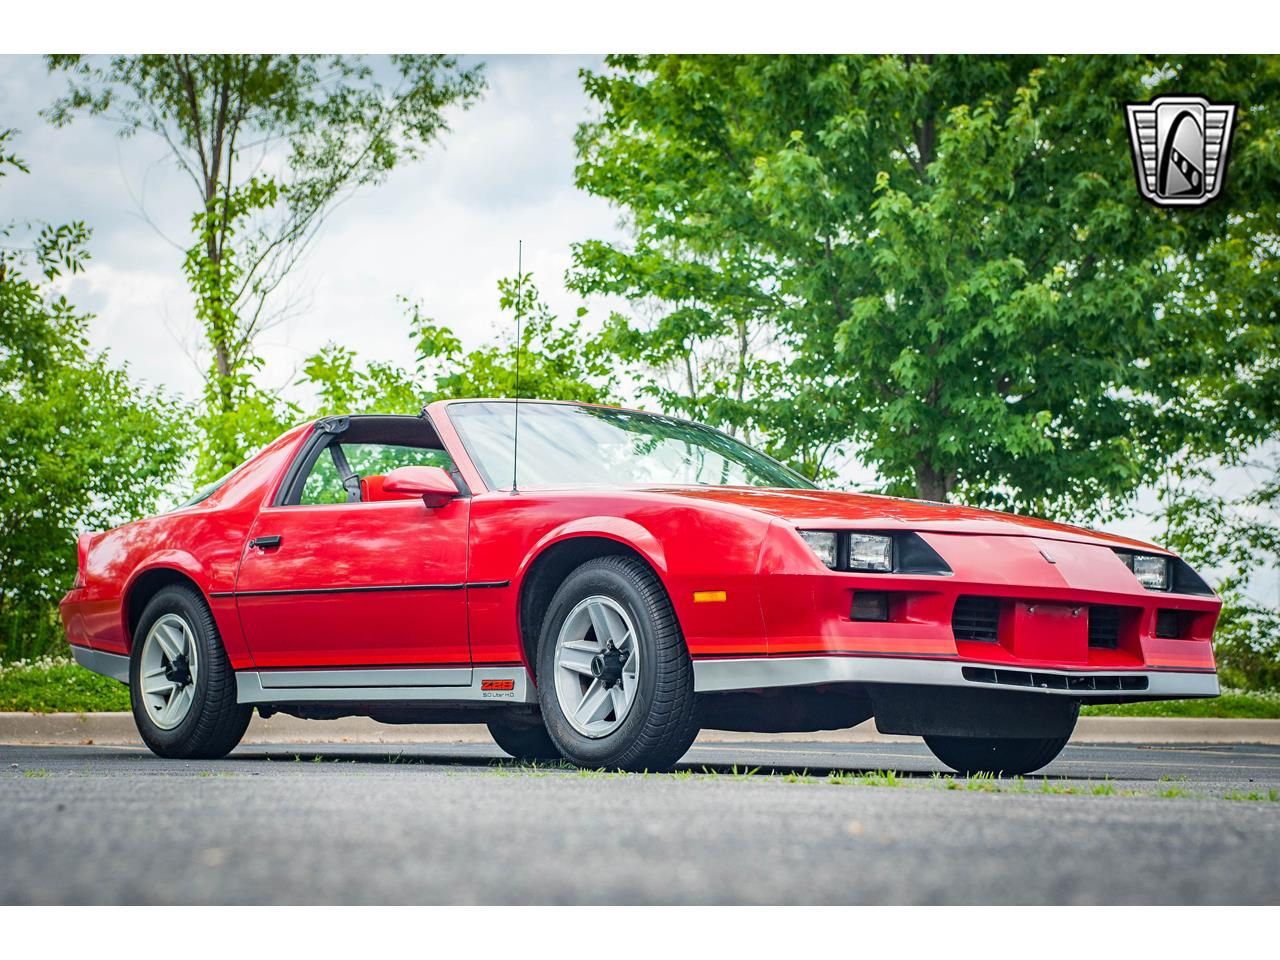 Large Picture of '84 Camaro - $9,500.00 Offered by Gateway Classic Cars - St. Louis - QB9Y